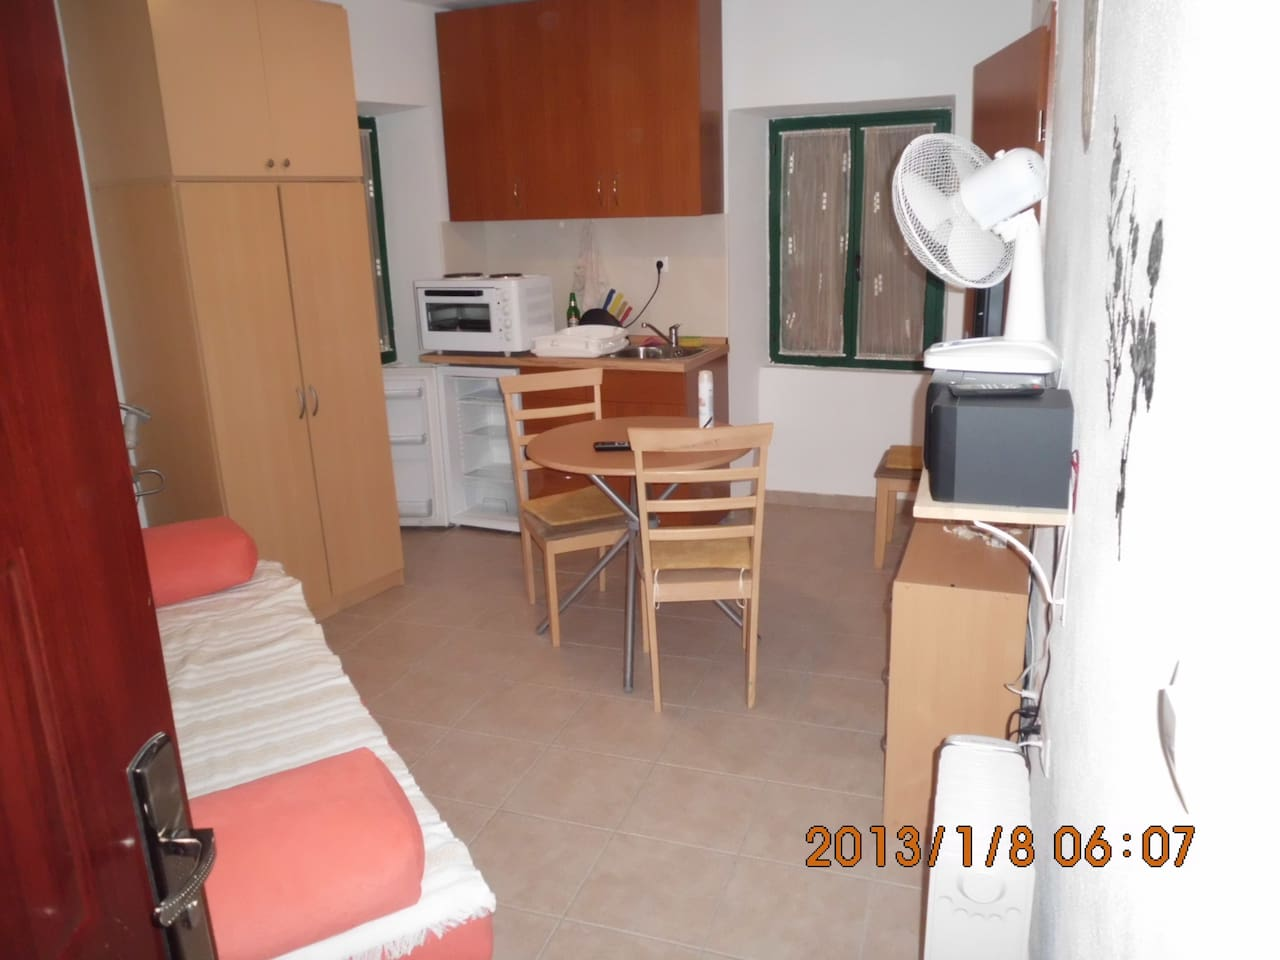 This is apartment on the first floor